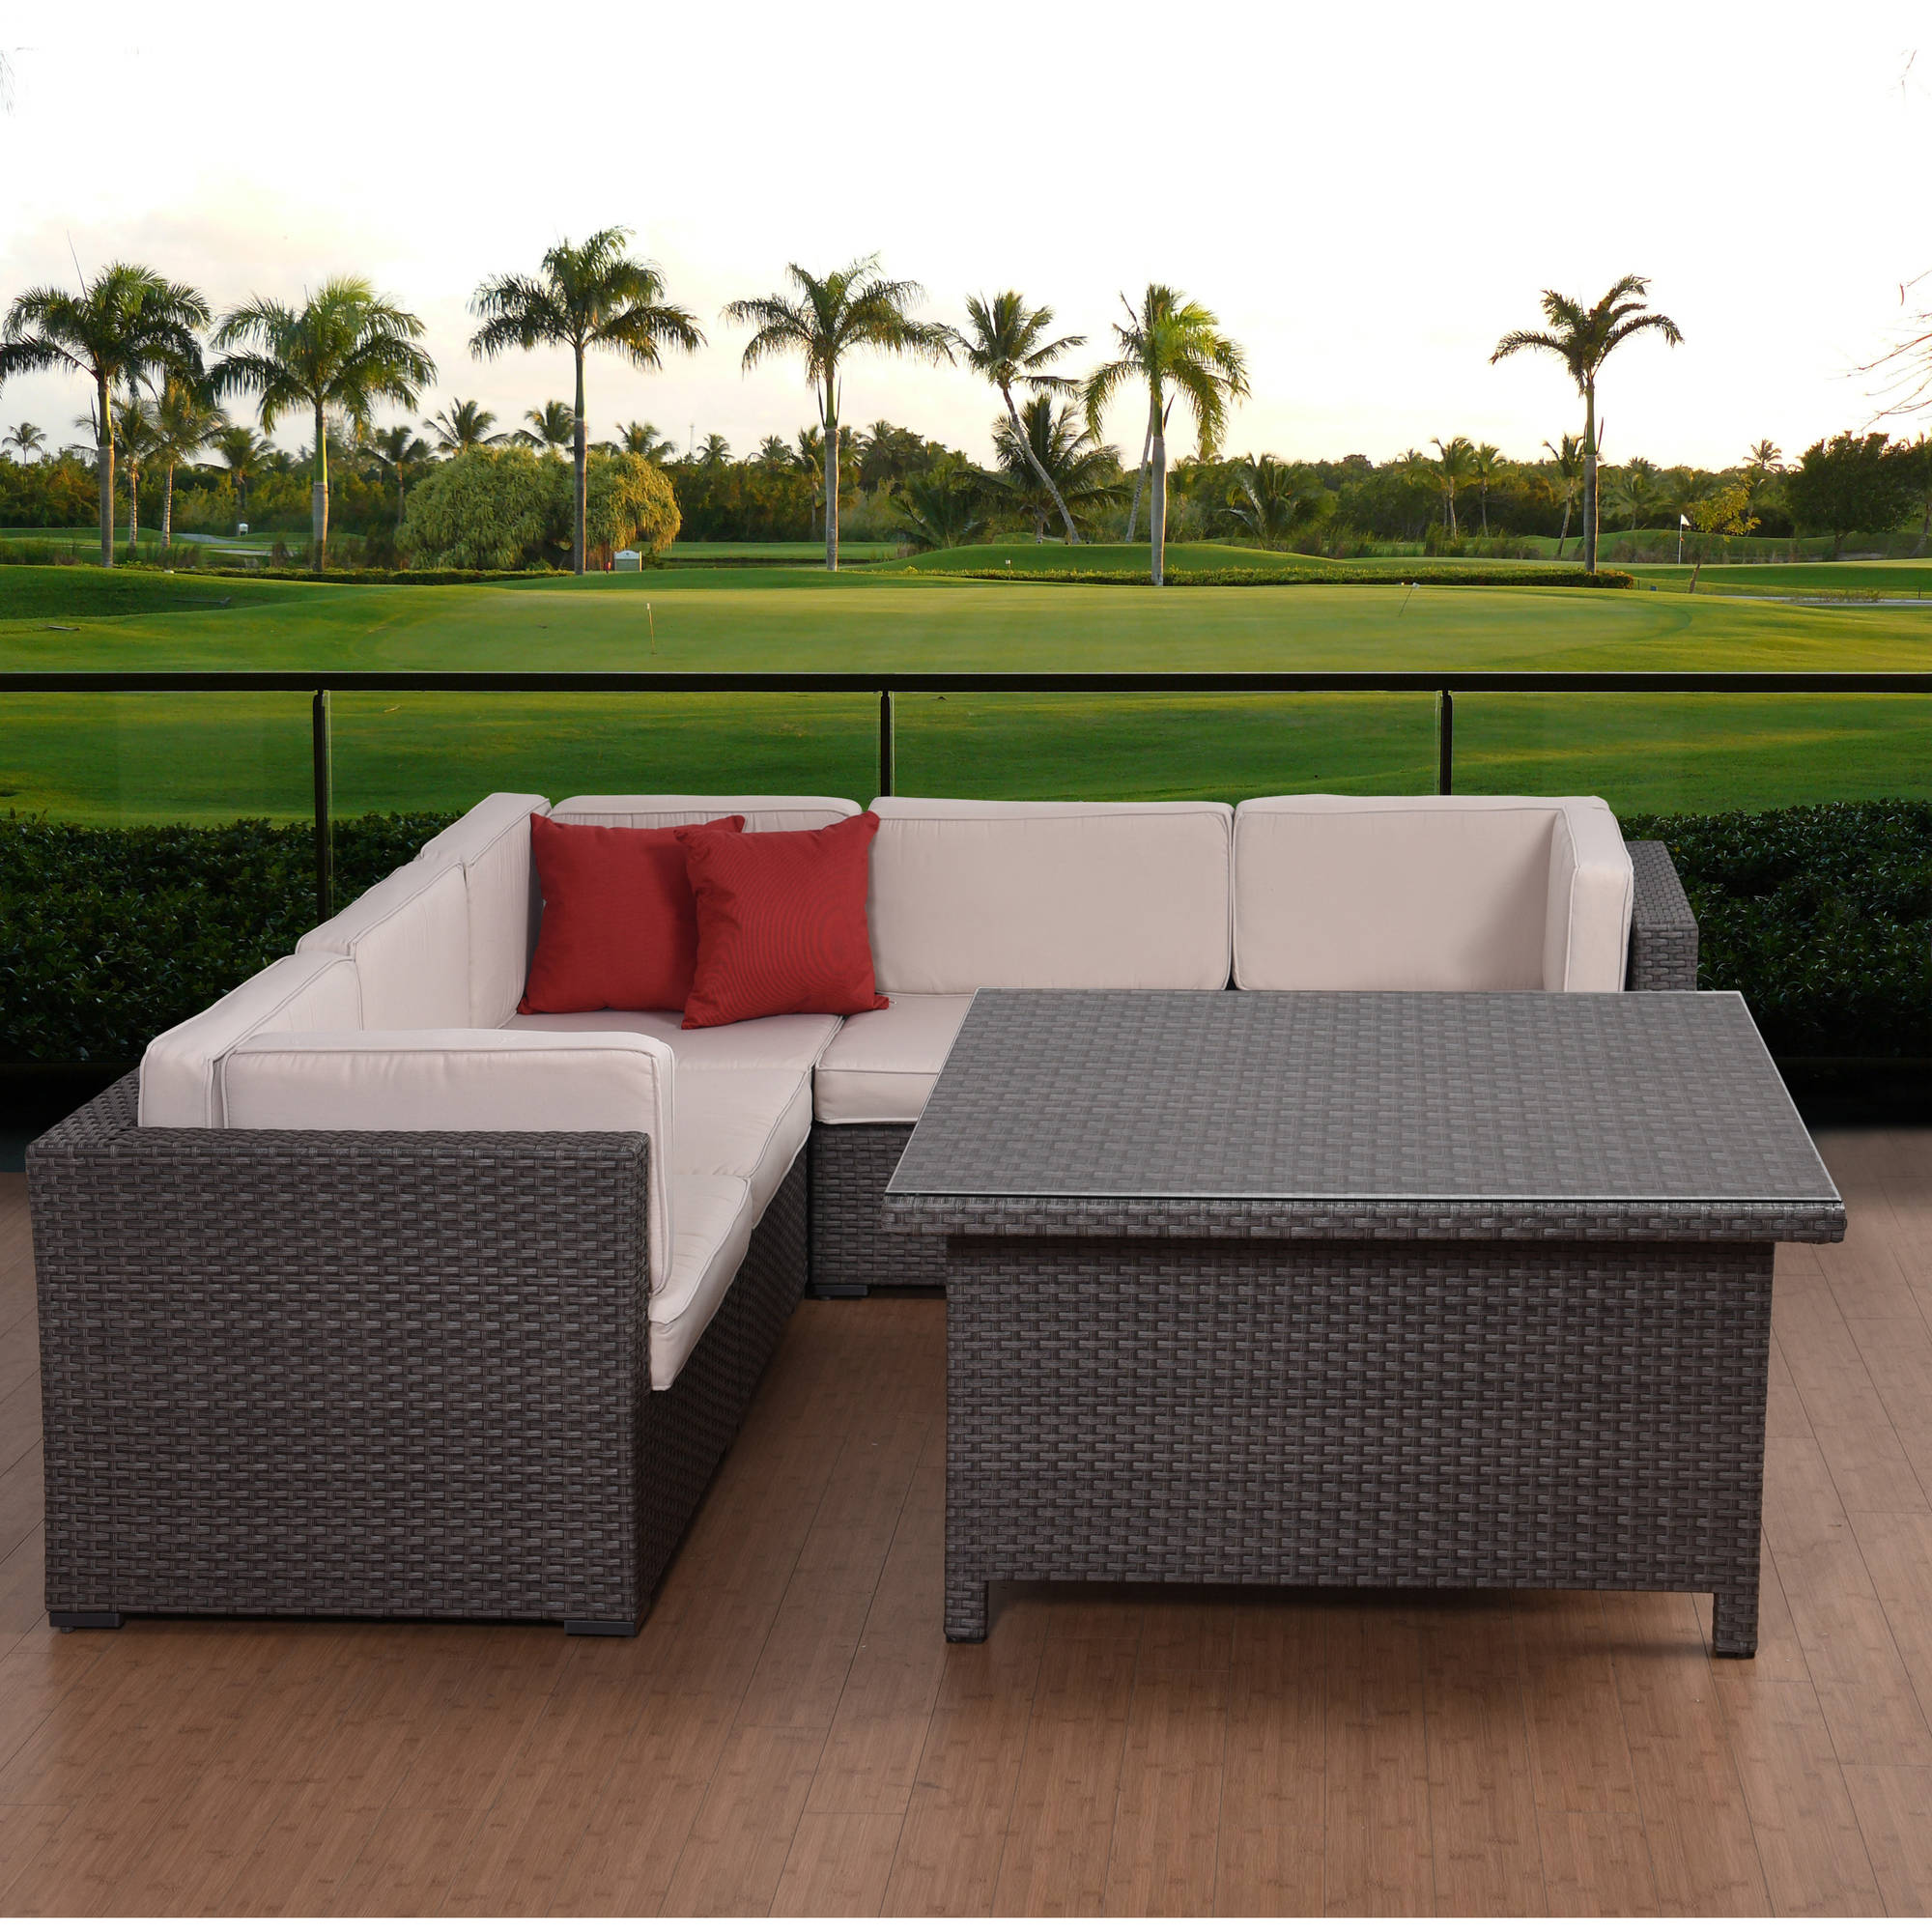 Atlantic Bellagio 7-Piece Sectional Grey Wicker with Square Table, Grey Wicker and Off White Cushions